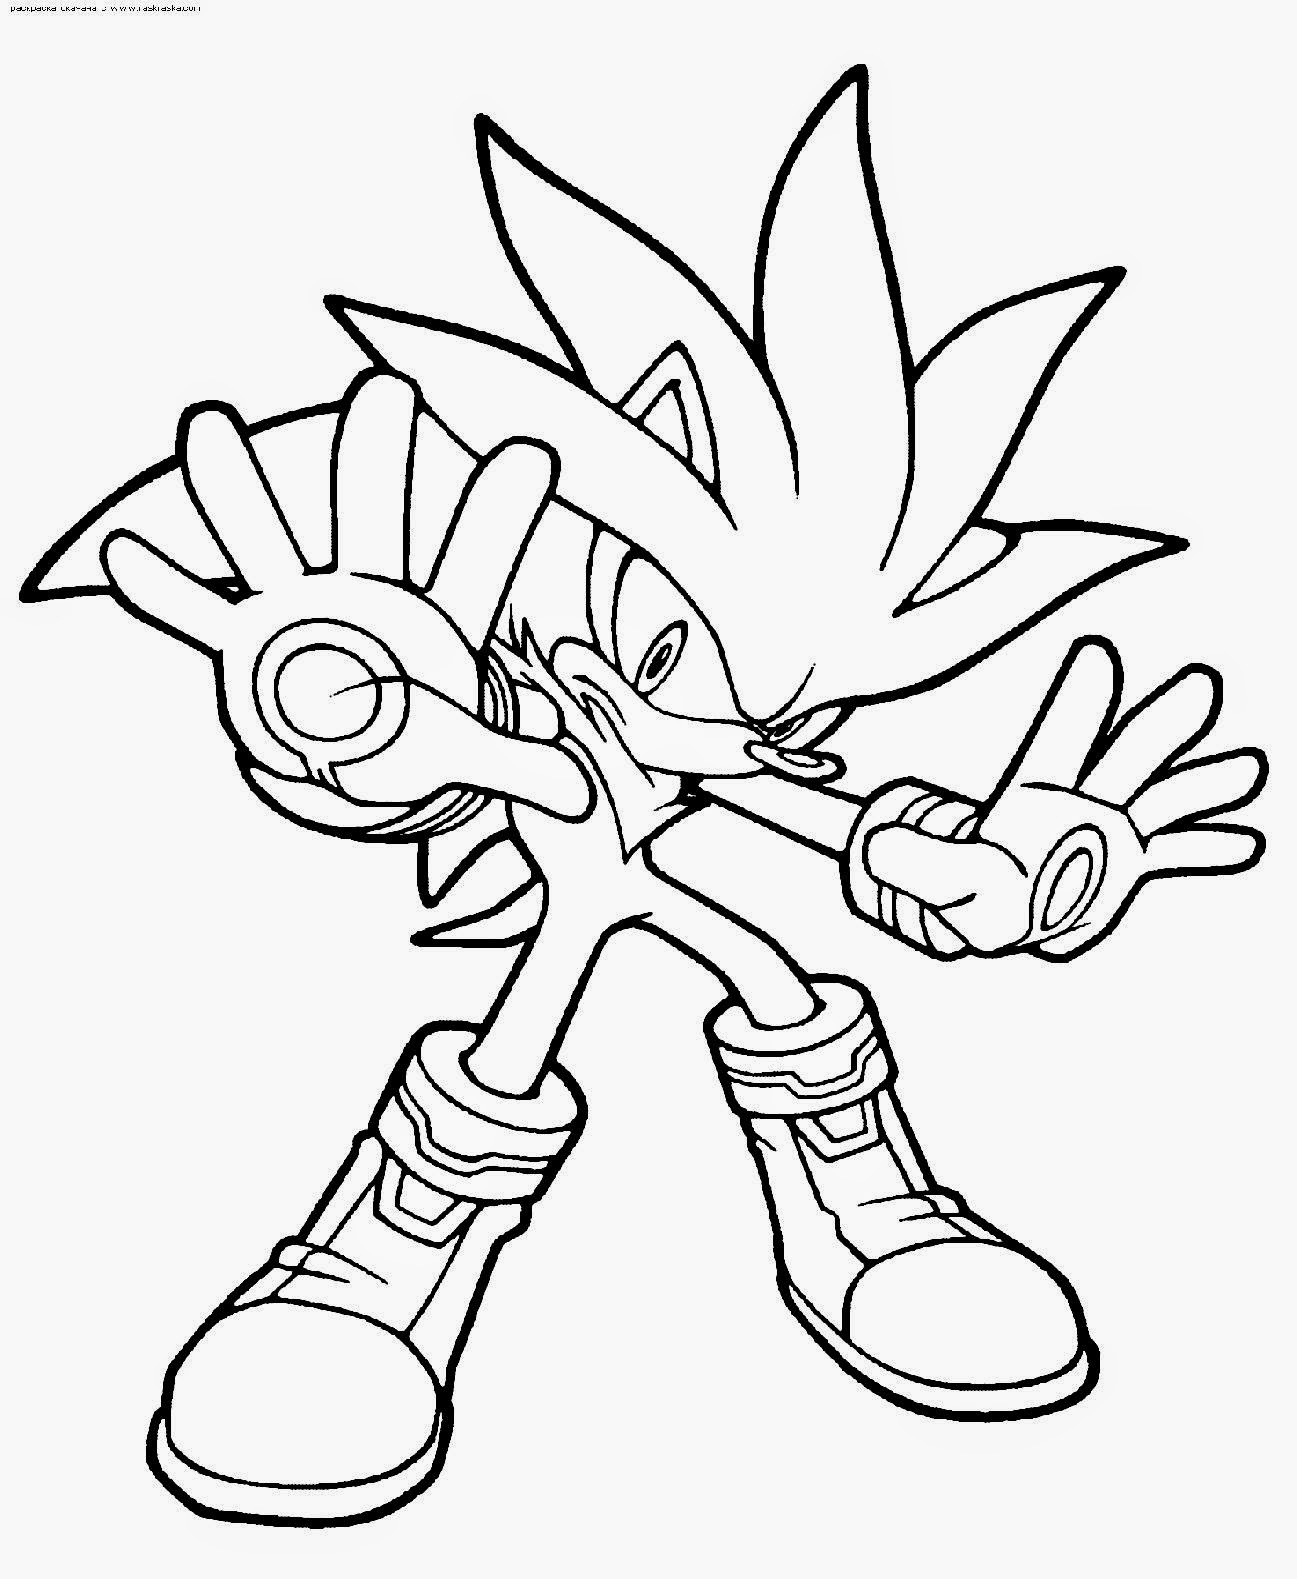 1297x1579 Magnificent Ideas Shadow The Hedgehog Coloring Pages Free